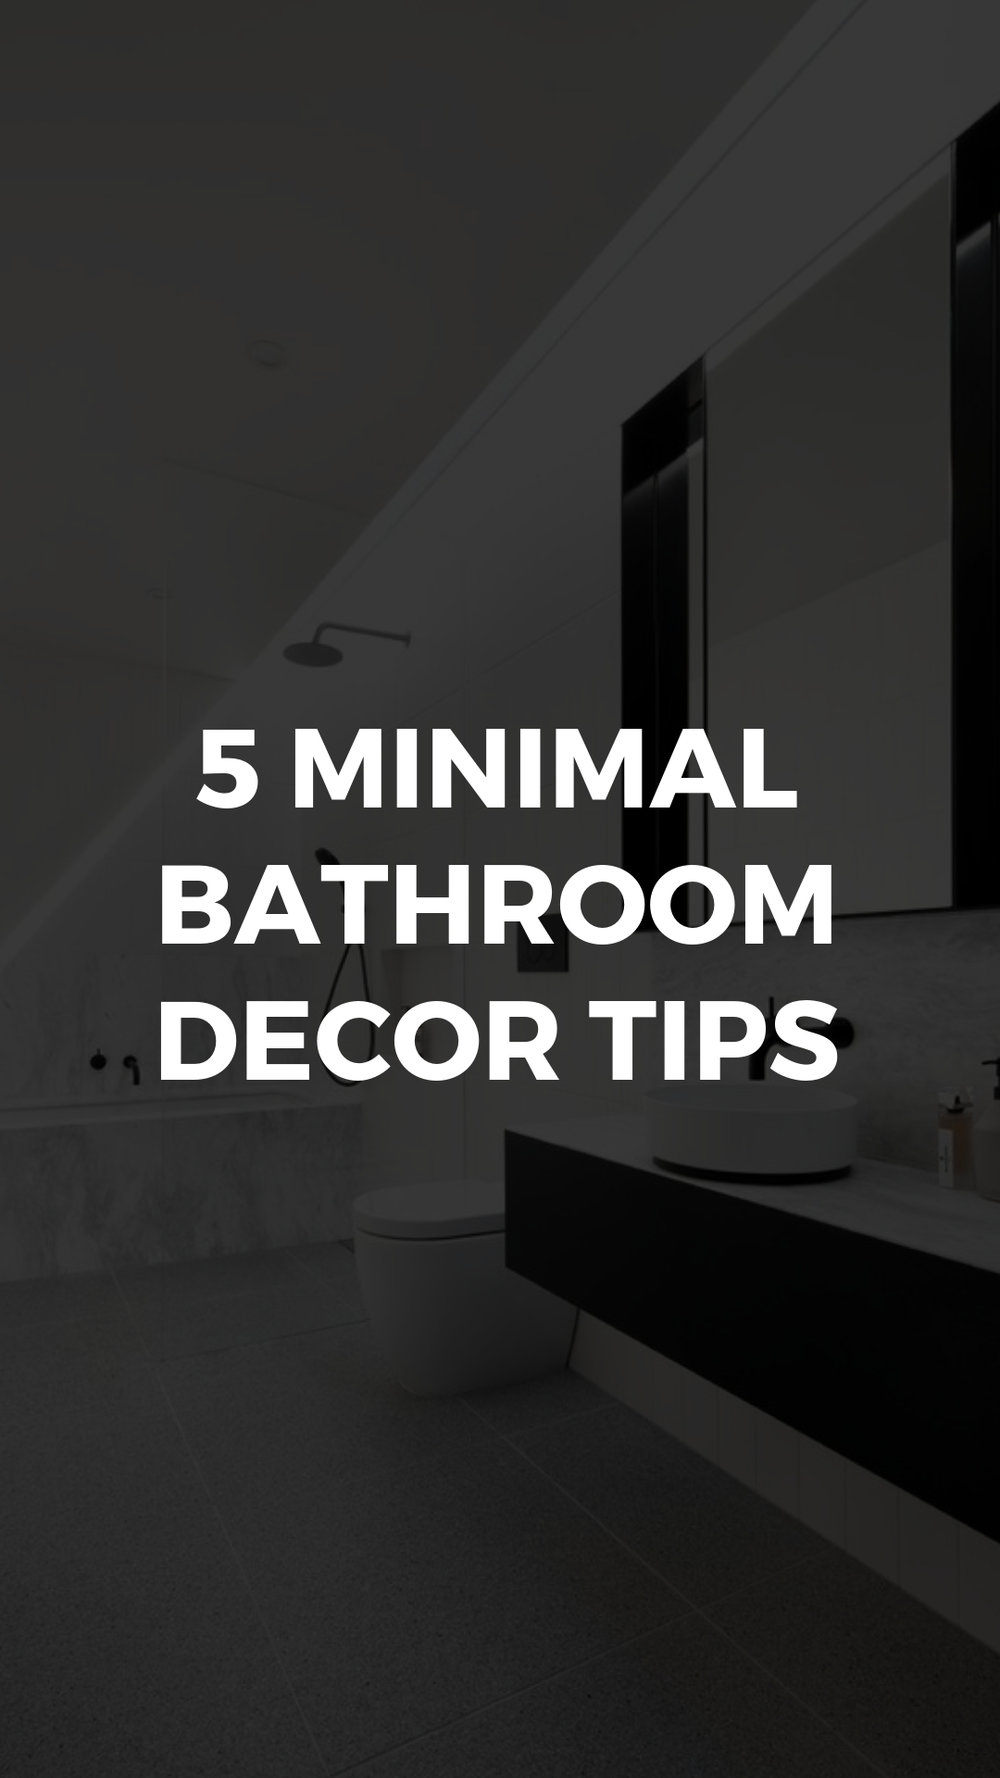 Minimal bathroom decor tips.jpg